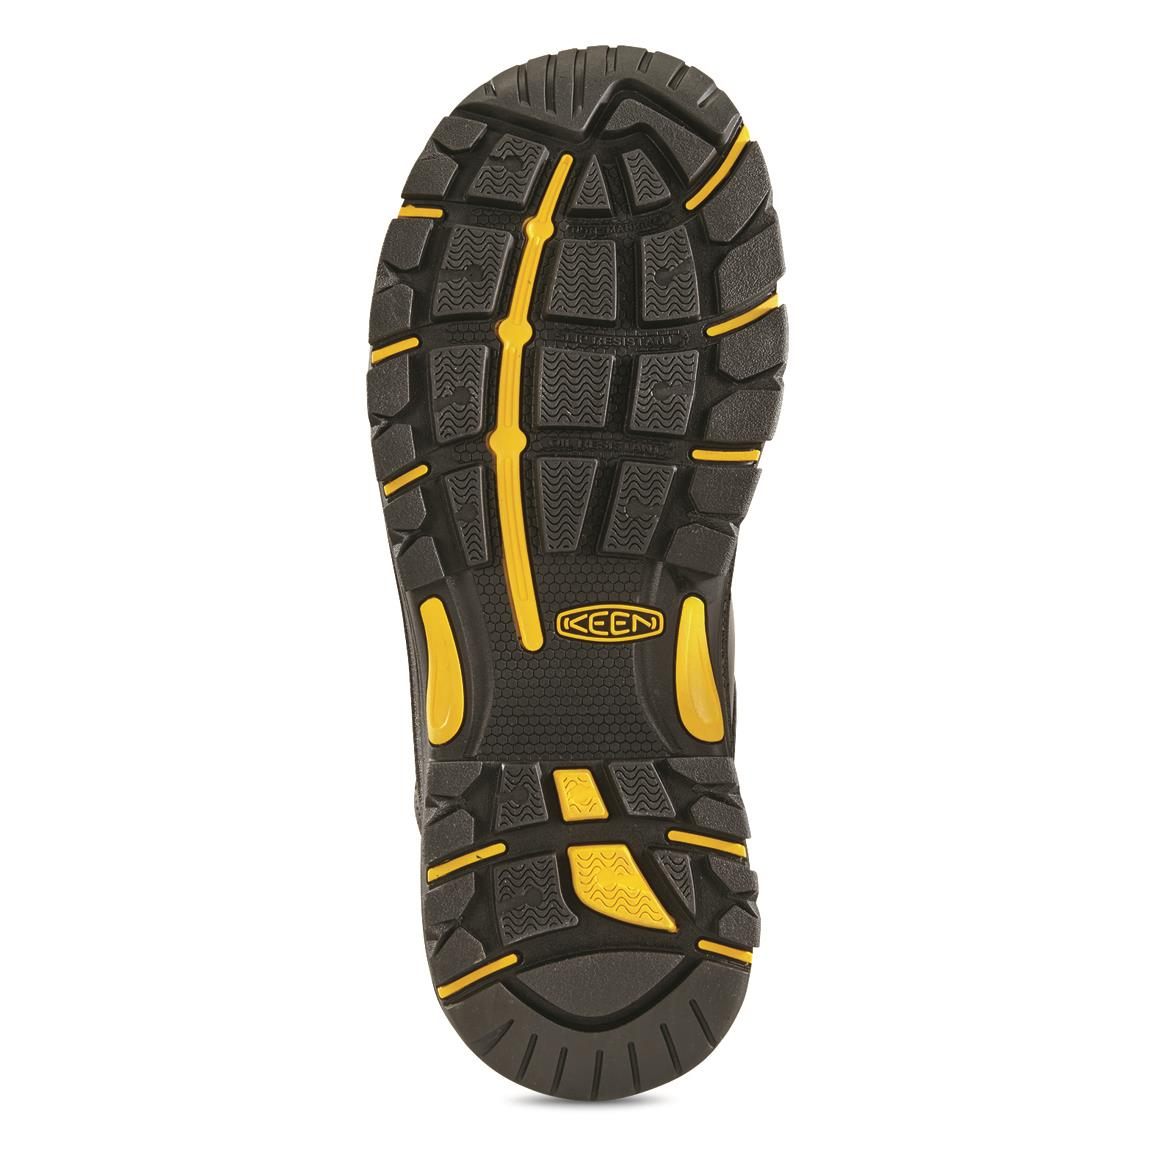 Non-marking outsole is oil and slip-resistant for traction